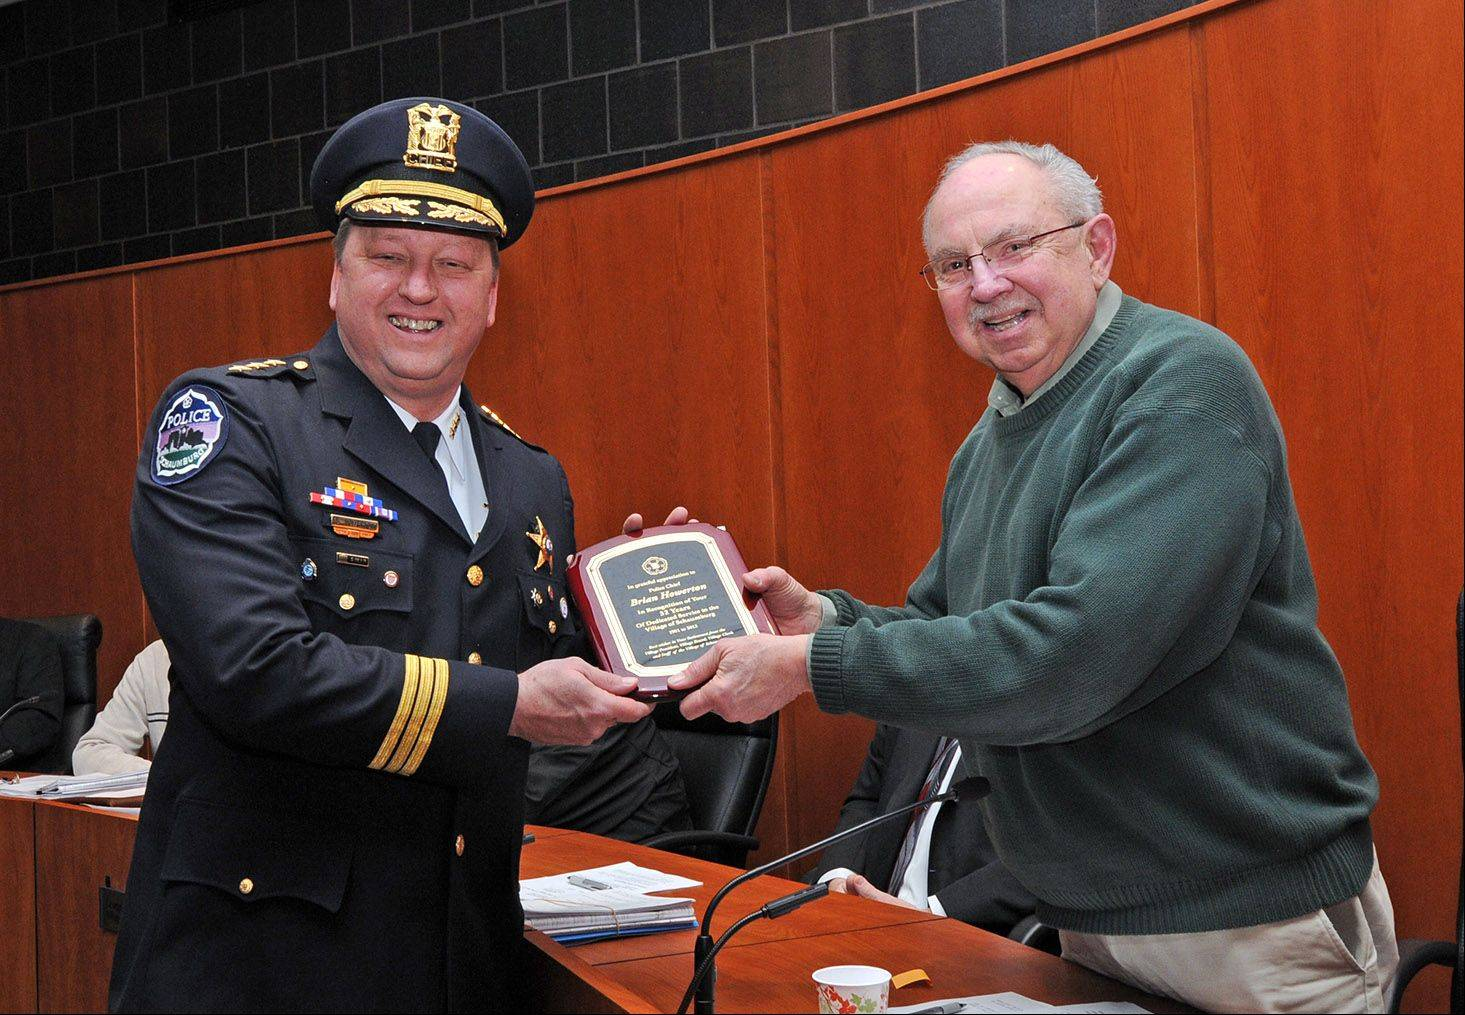 Schaumburg officials praise Howerton's service